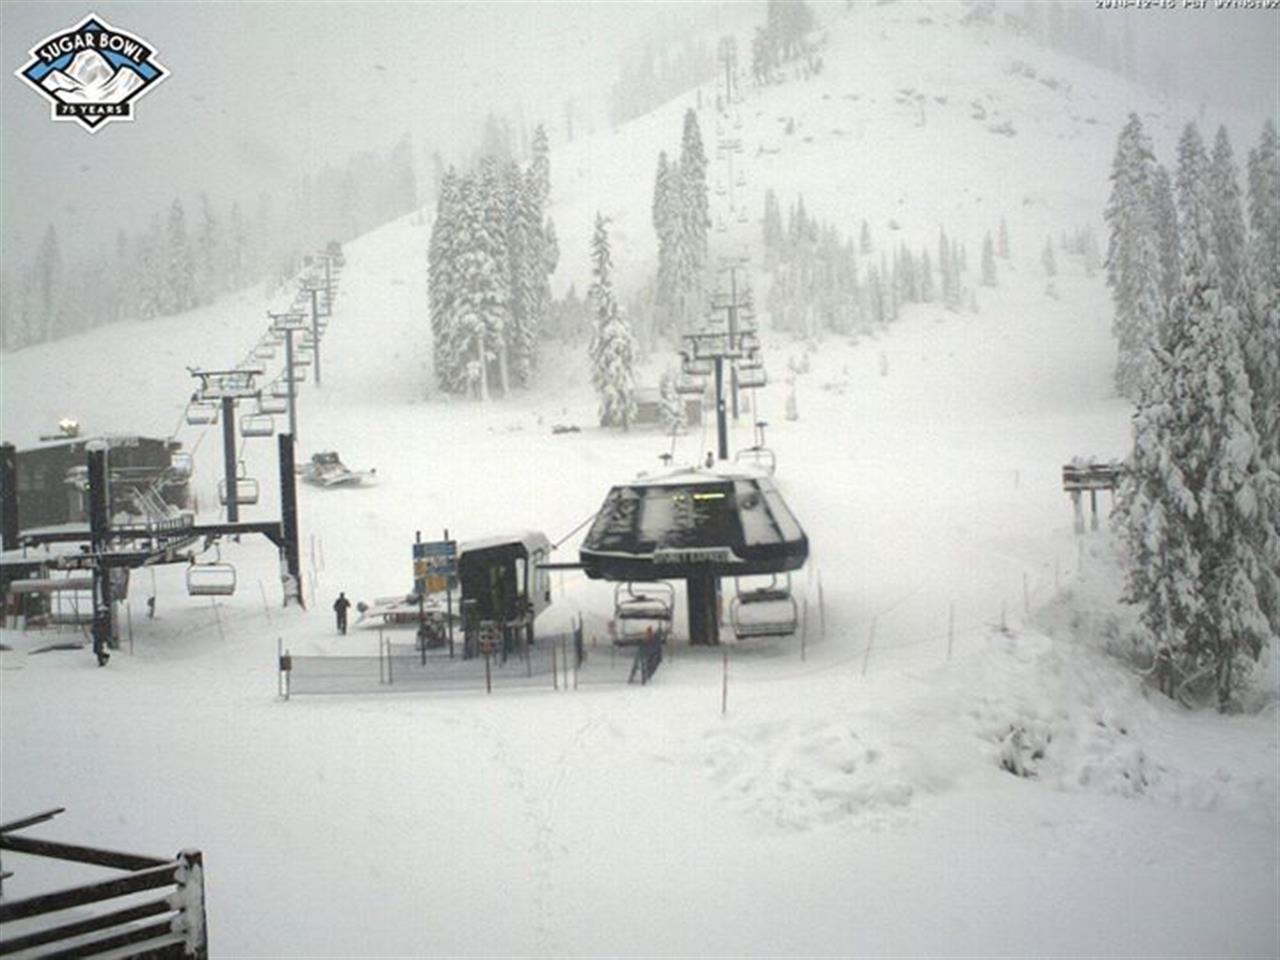 We've got snow from top to bottom! Thanks Sugar Bowl Resort for the top of the mountain pic! Truckee/Lake Tahoe, CA